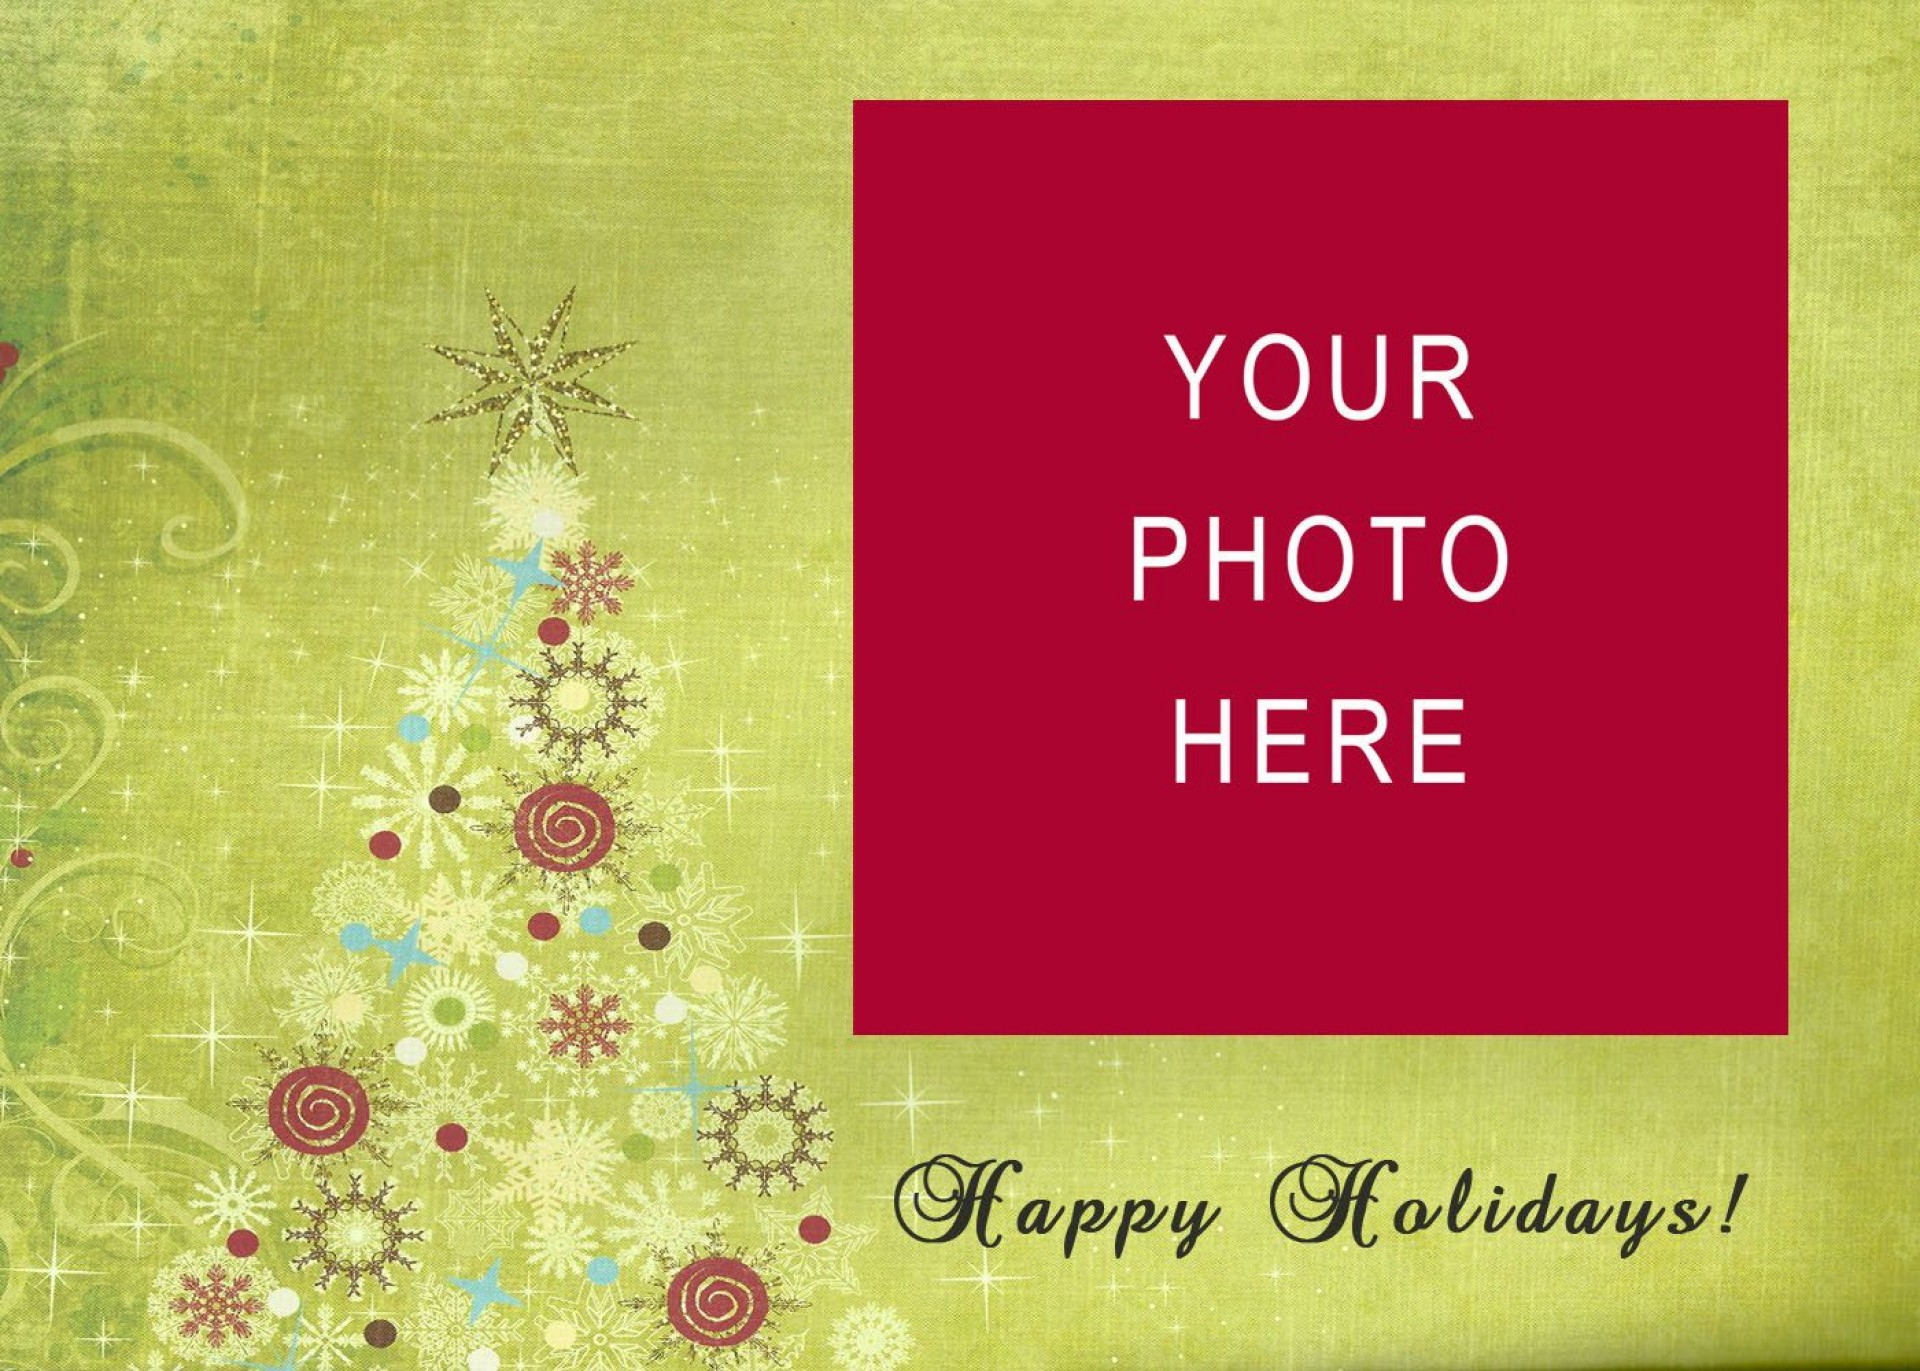 008 Staggering Free Holiday Card Template High Def  Templates Printable Photo For Word1920